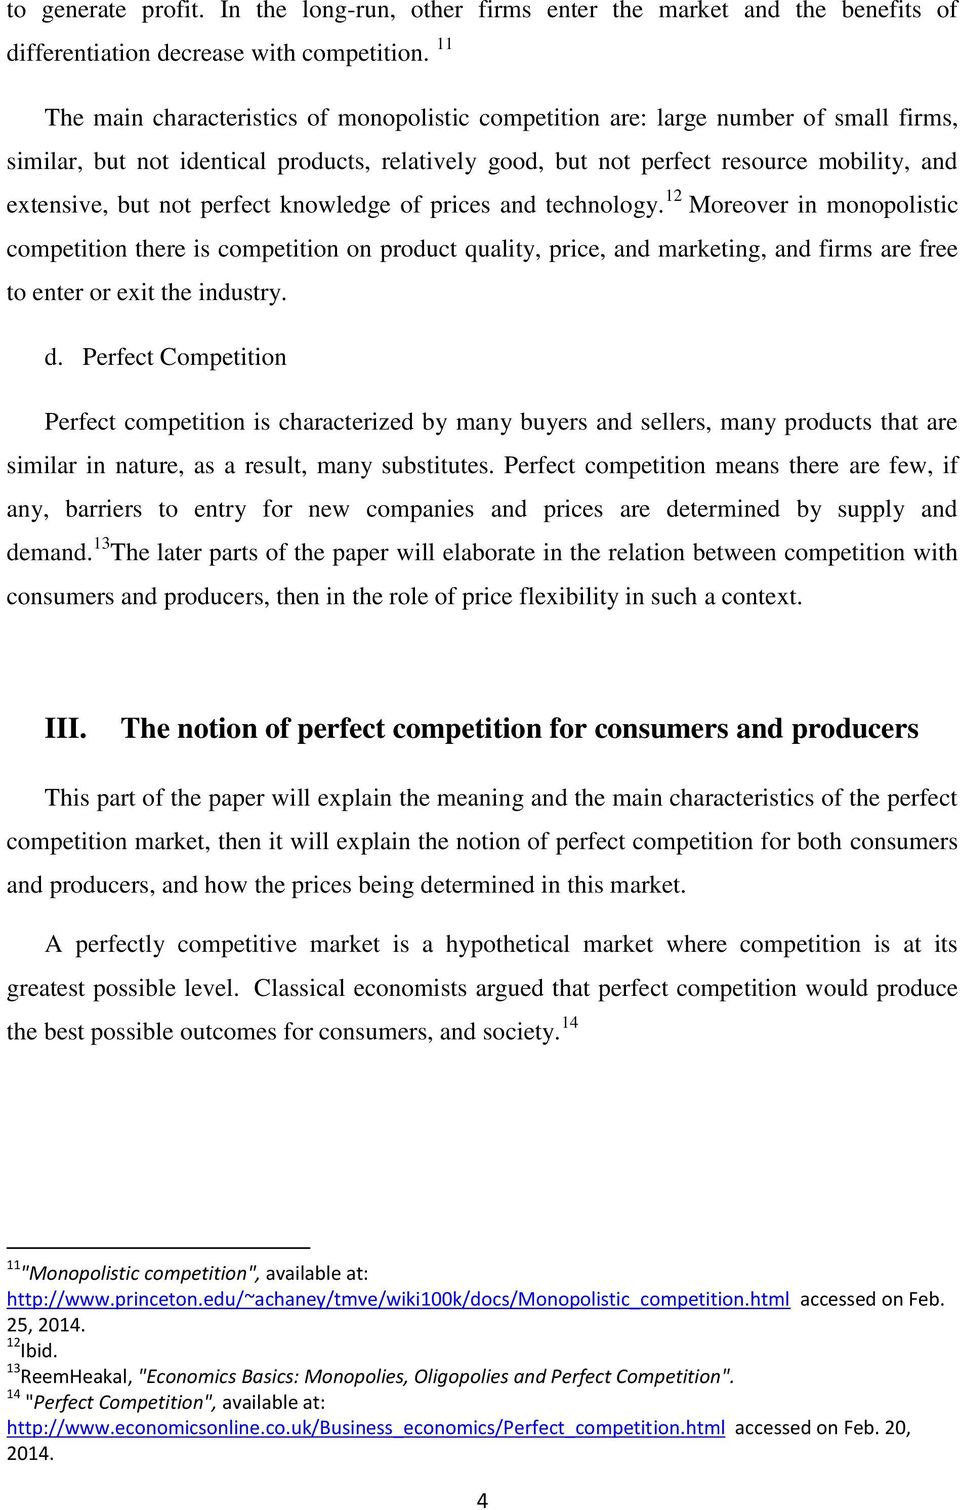 not perfect knowledge of prices and technology. 12 Moreover in monopolistic competition there is competition on product quality, price, and marketing, and firms are free to enter or exit the industry.